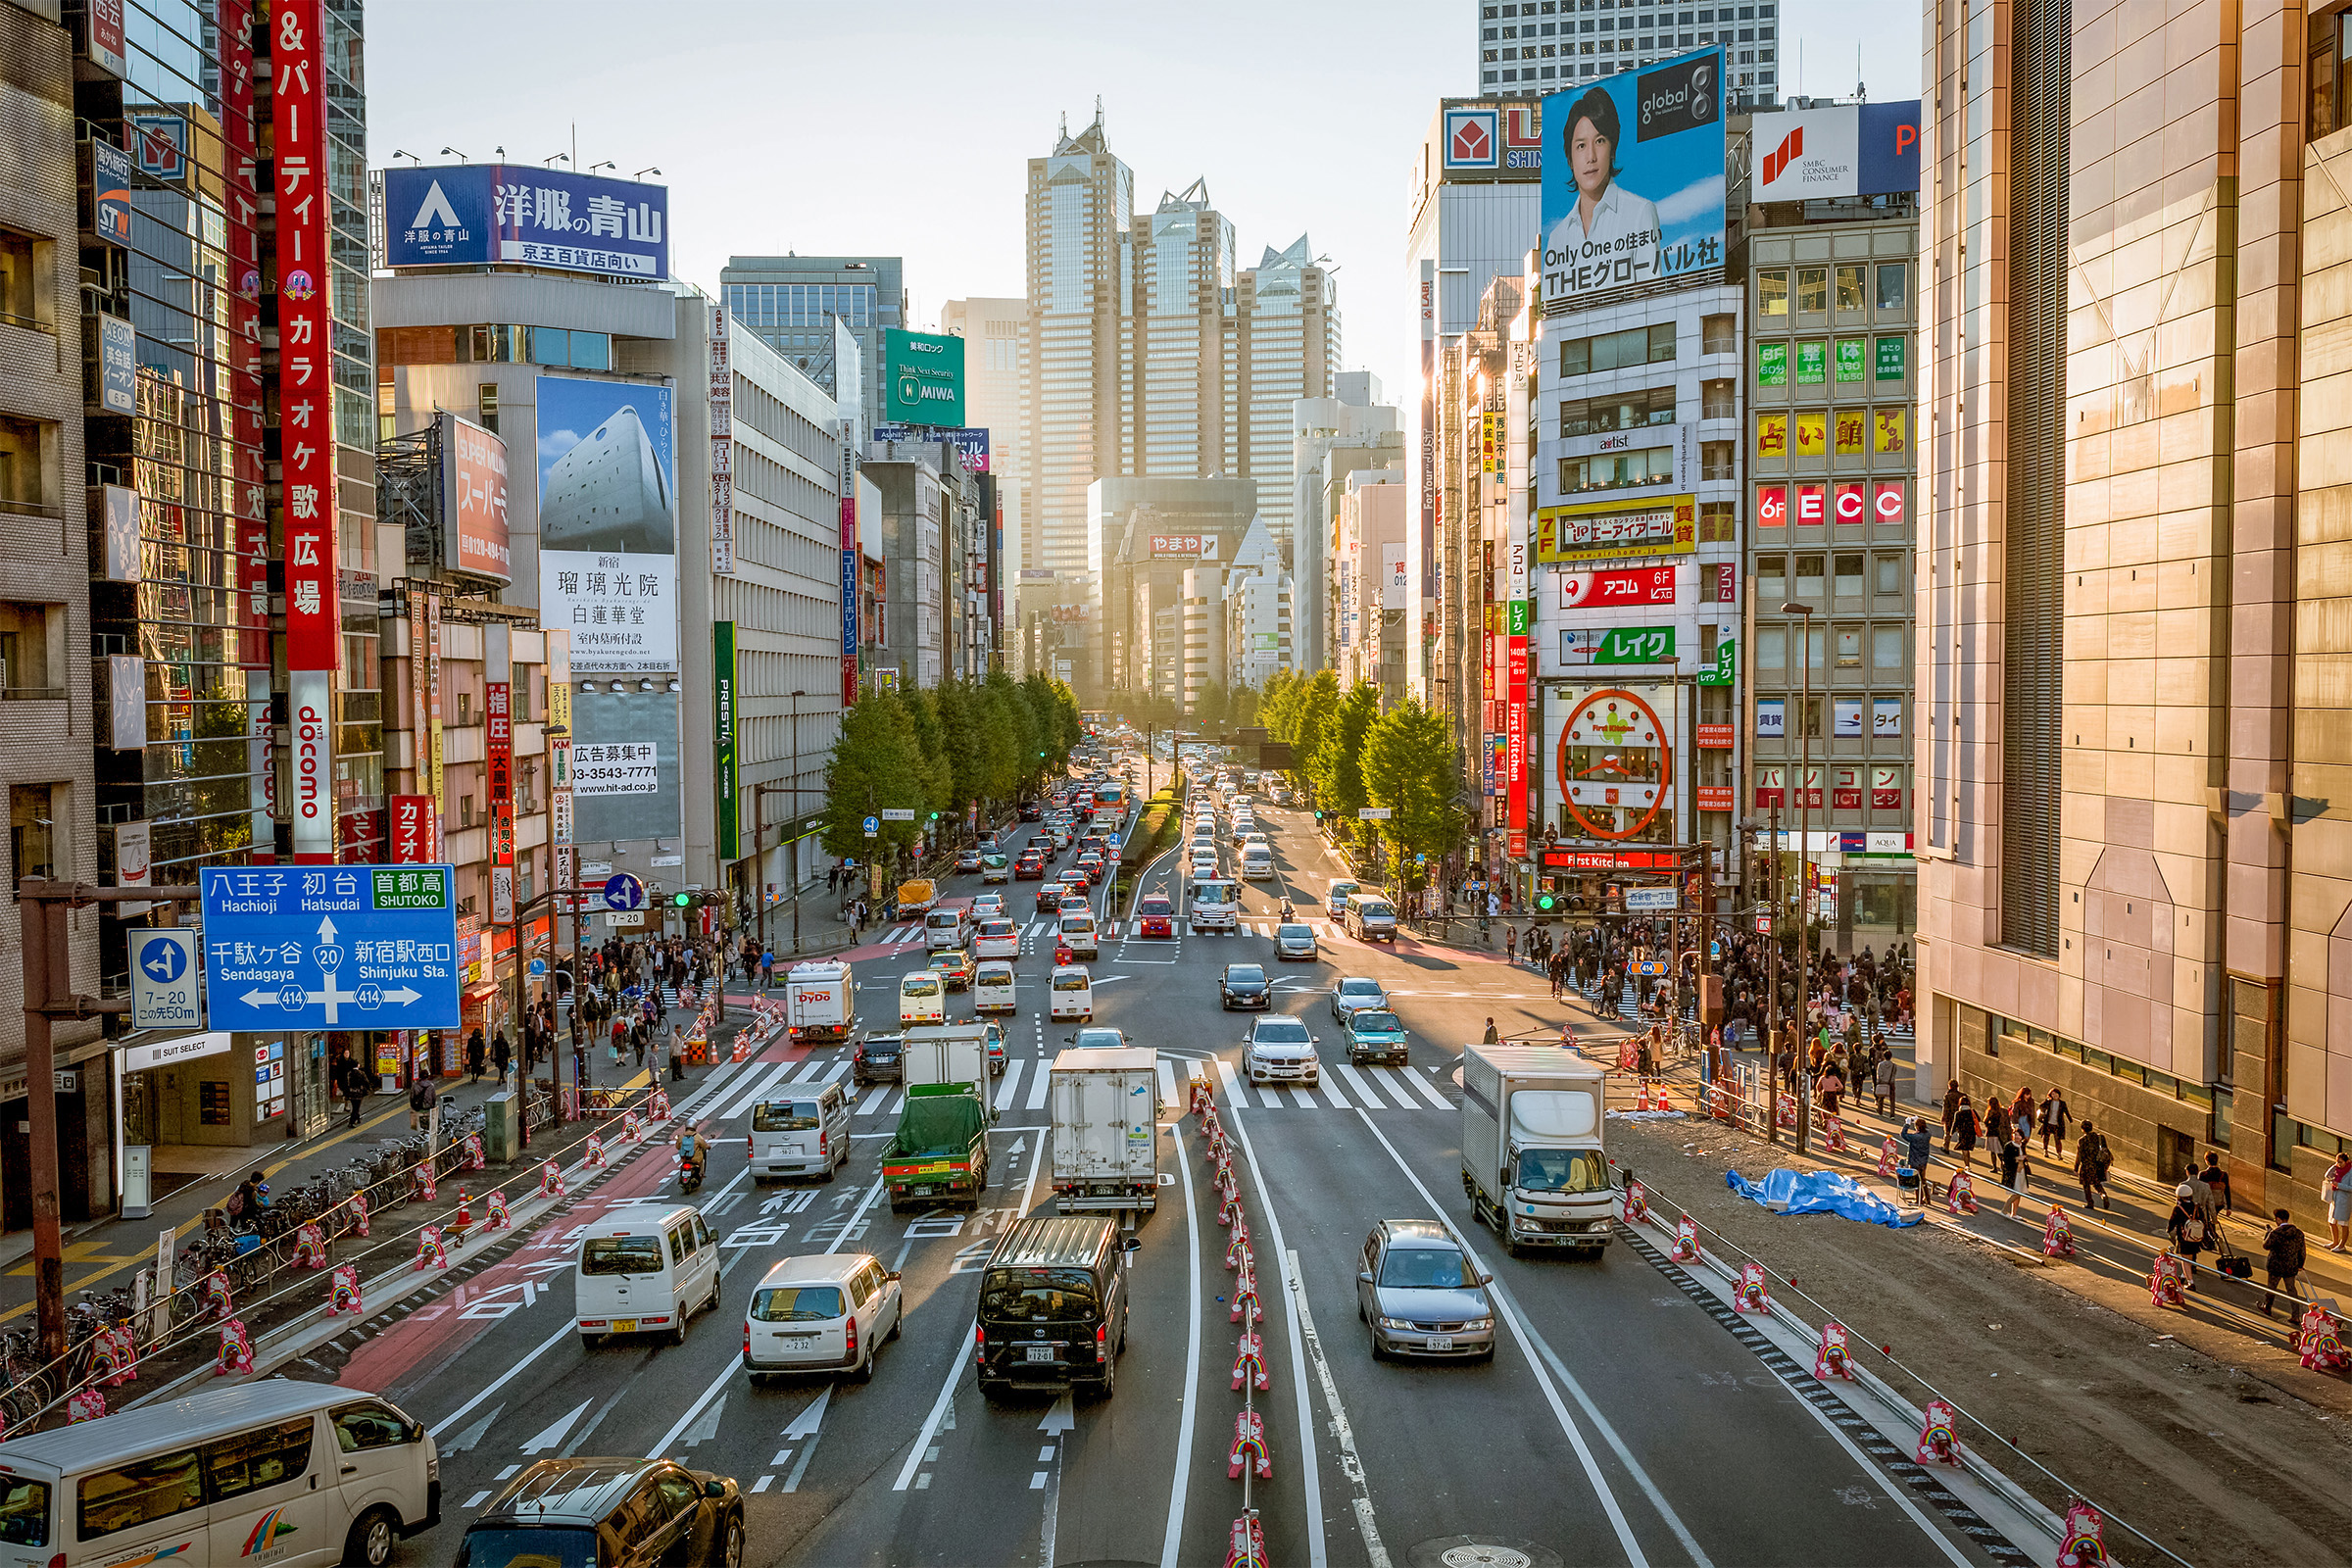 A busy city street surrounded by skyscrapers in Tokyo, Japan.